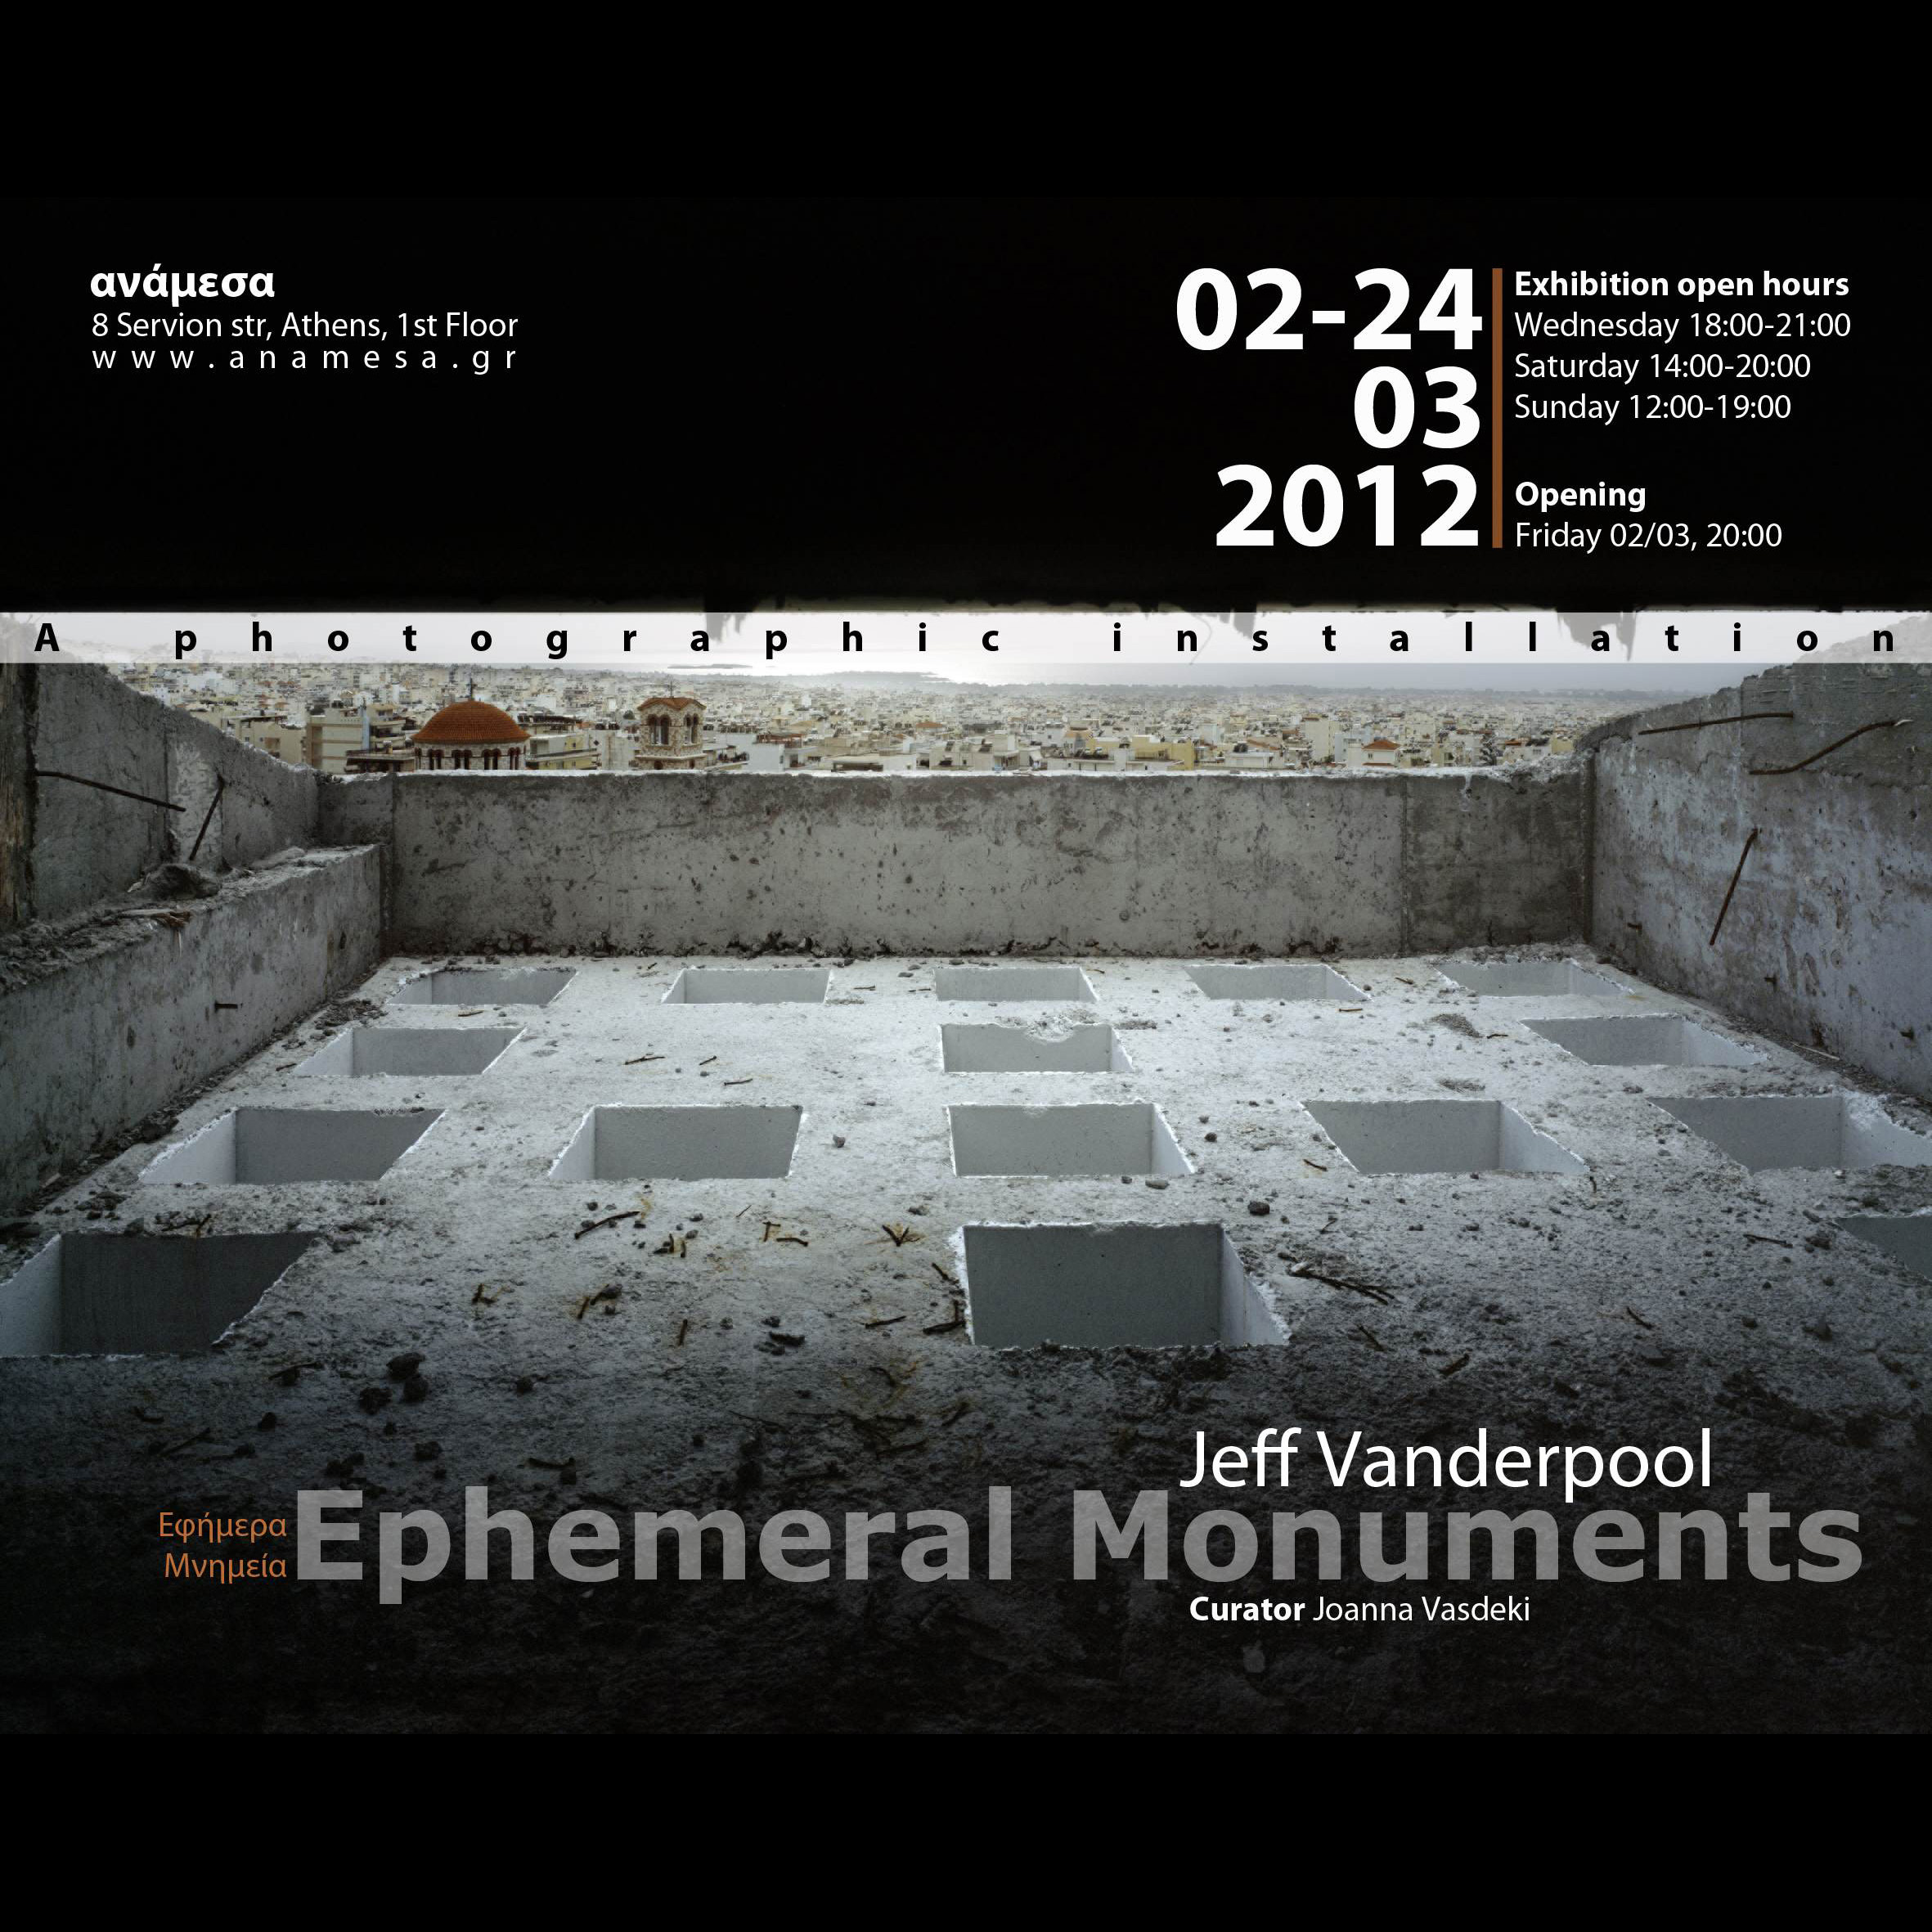 Ephemeral Monuments